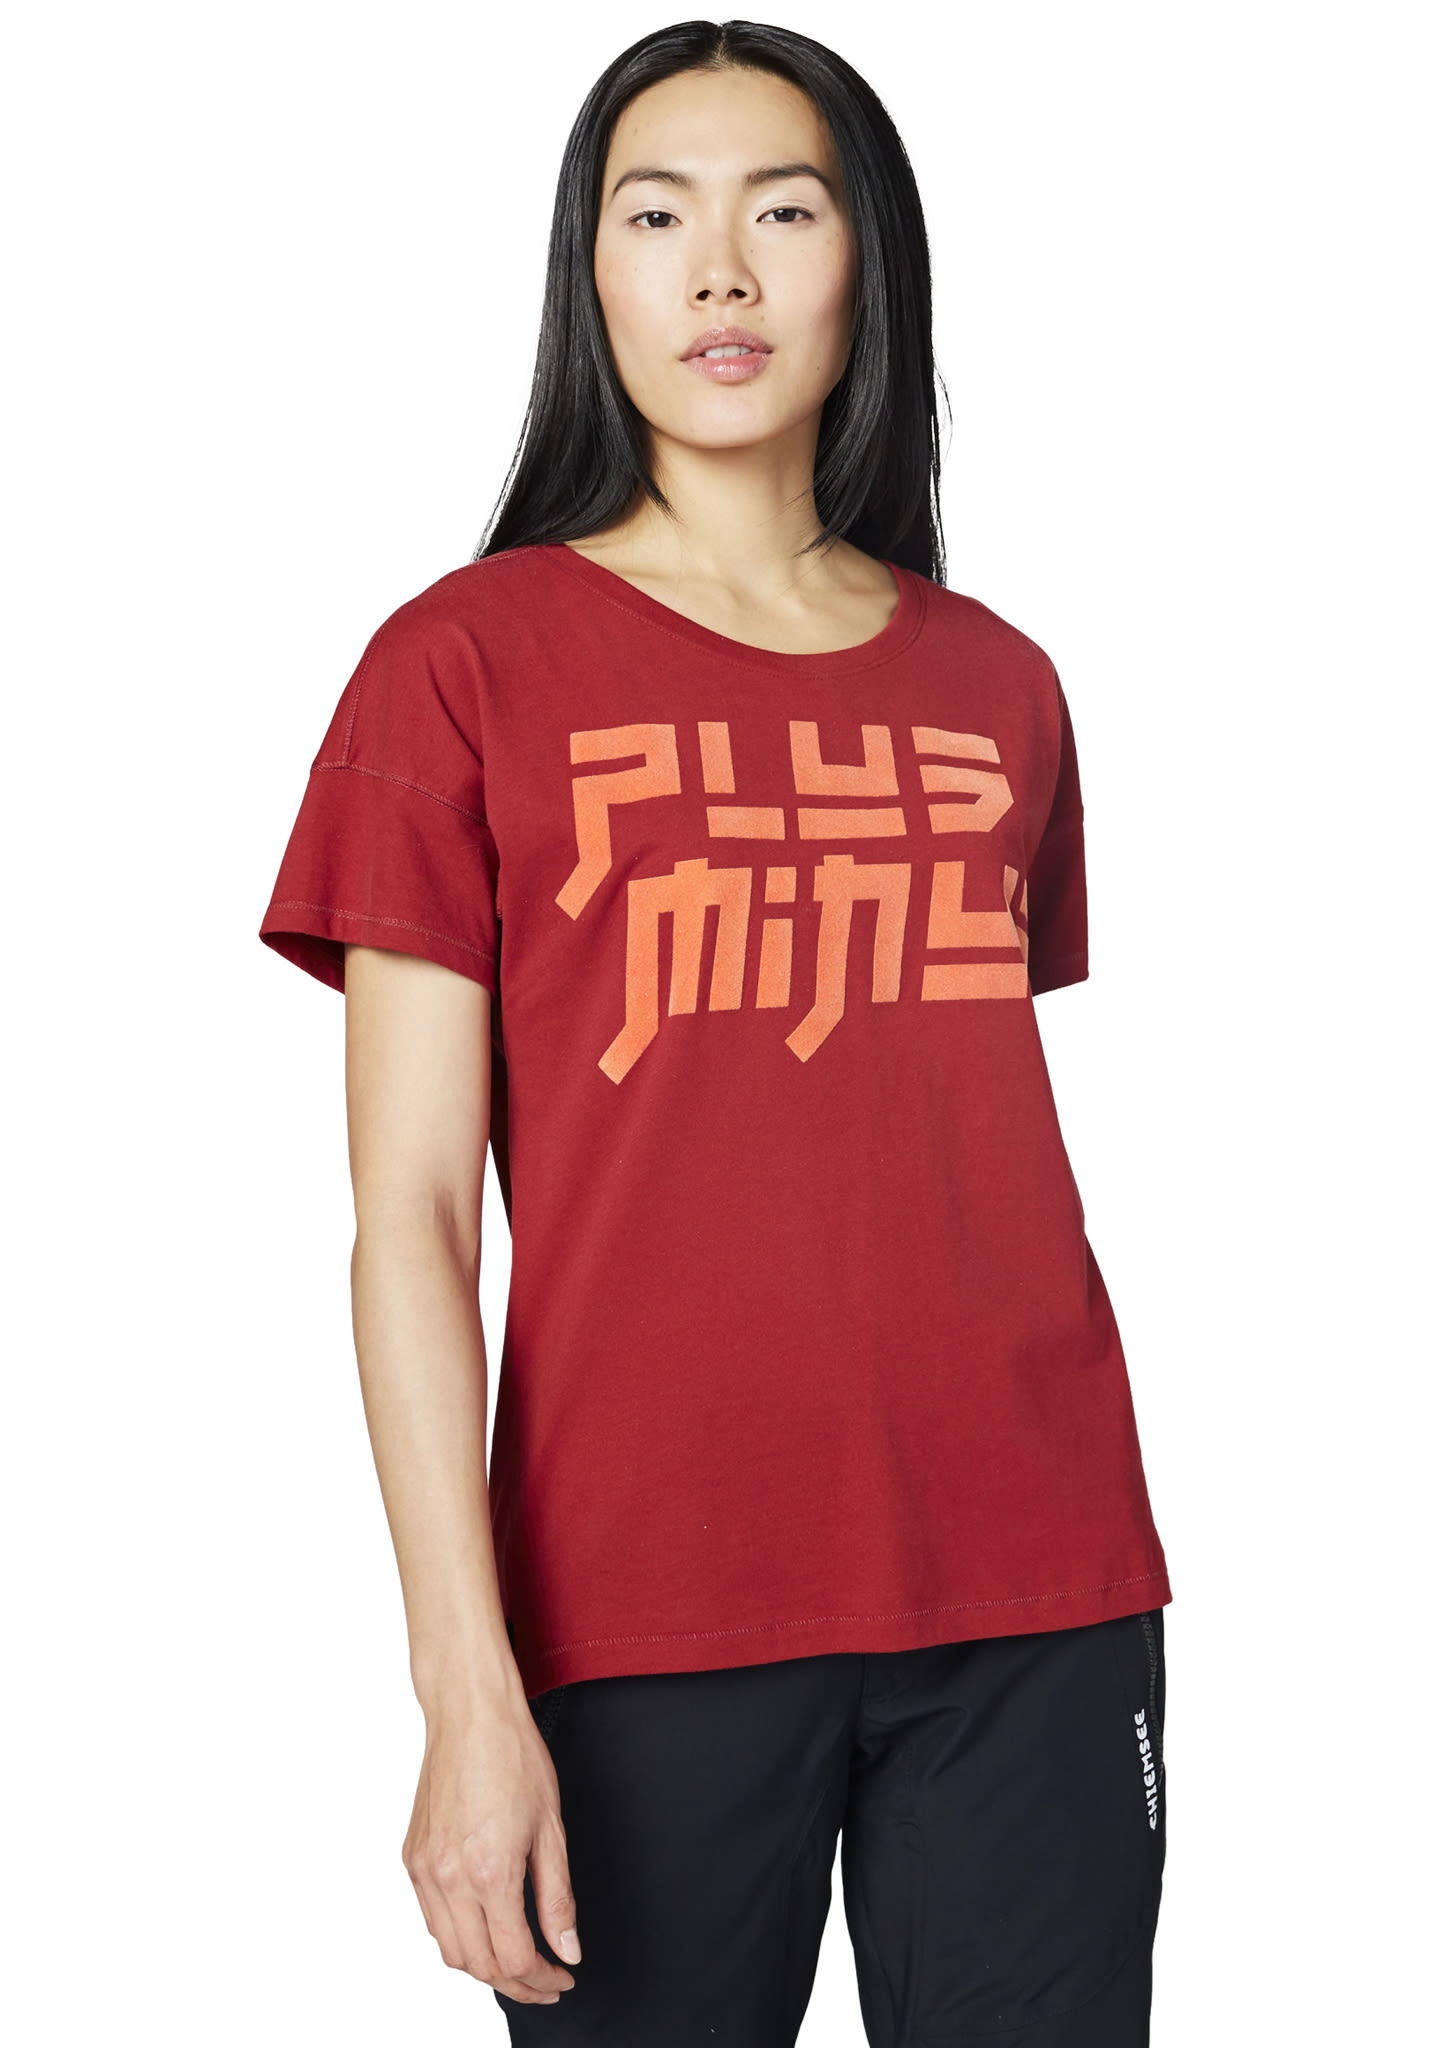 4758a48e80 Chiemsee Boxy-Shape - T-Shirt für Damen - Rot - Planet Sports